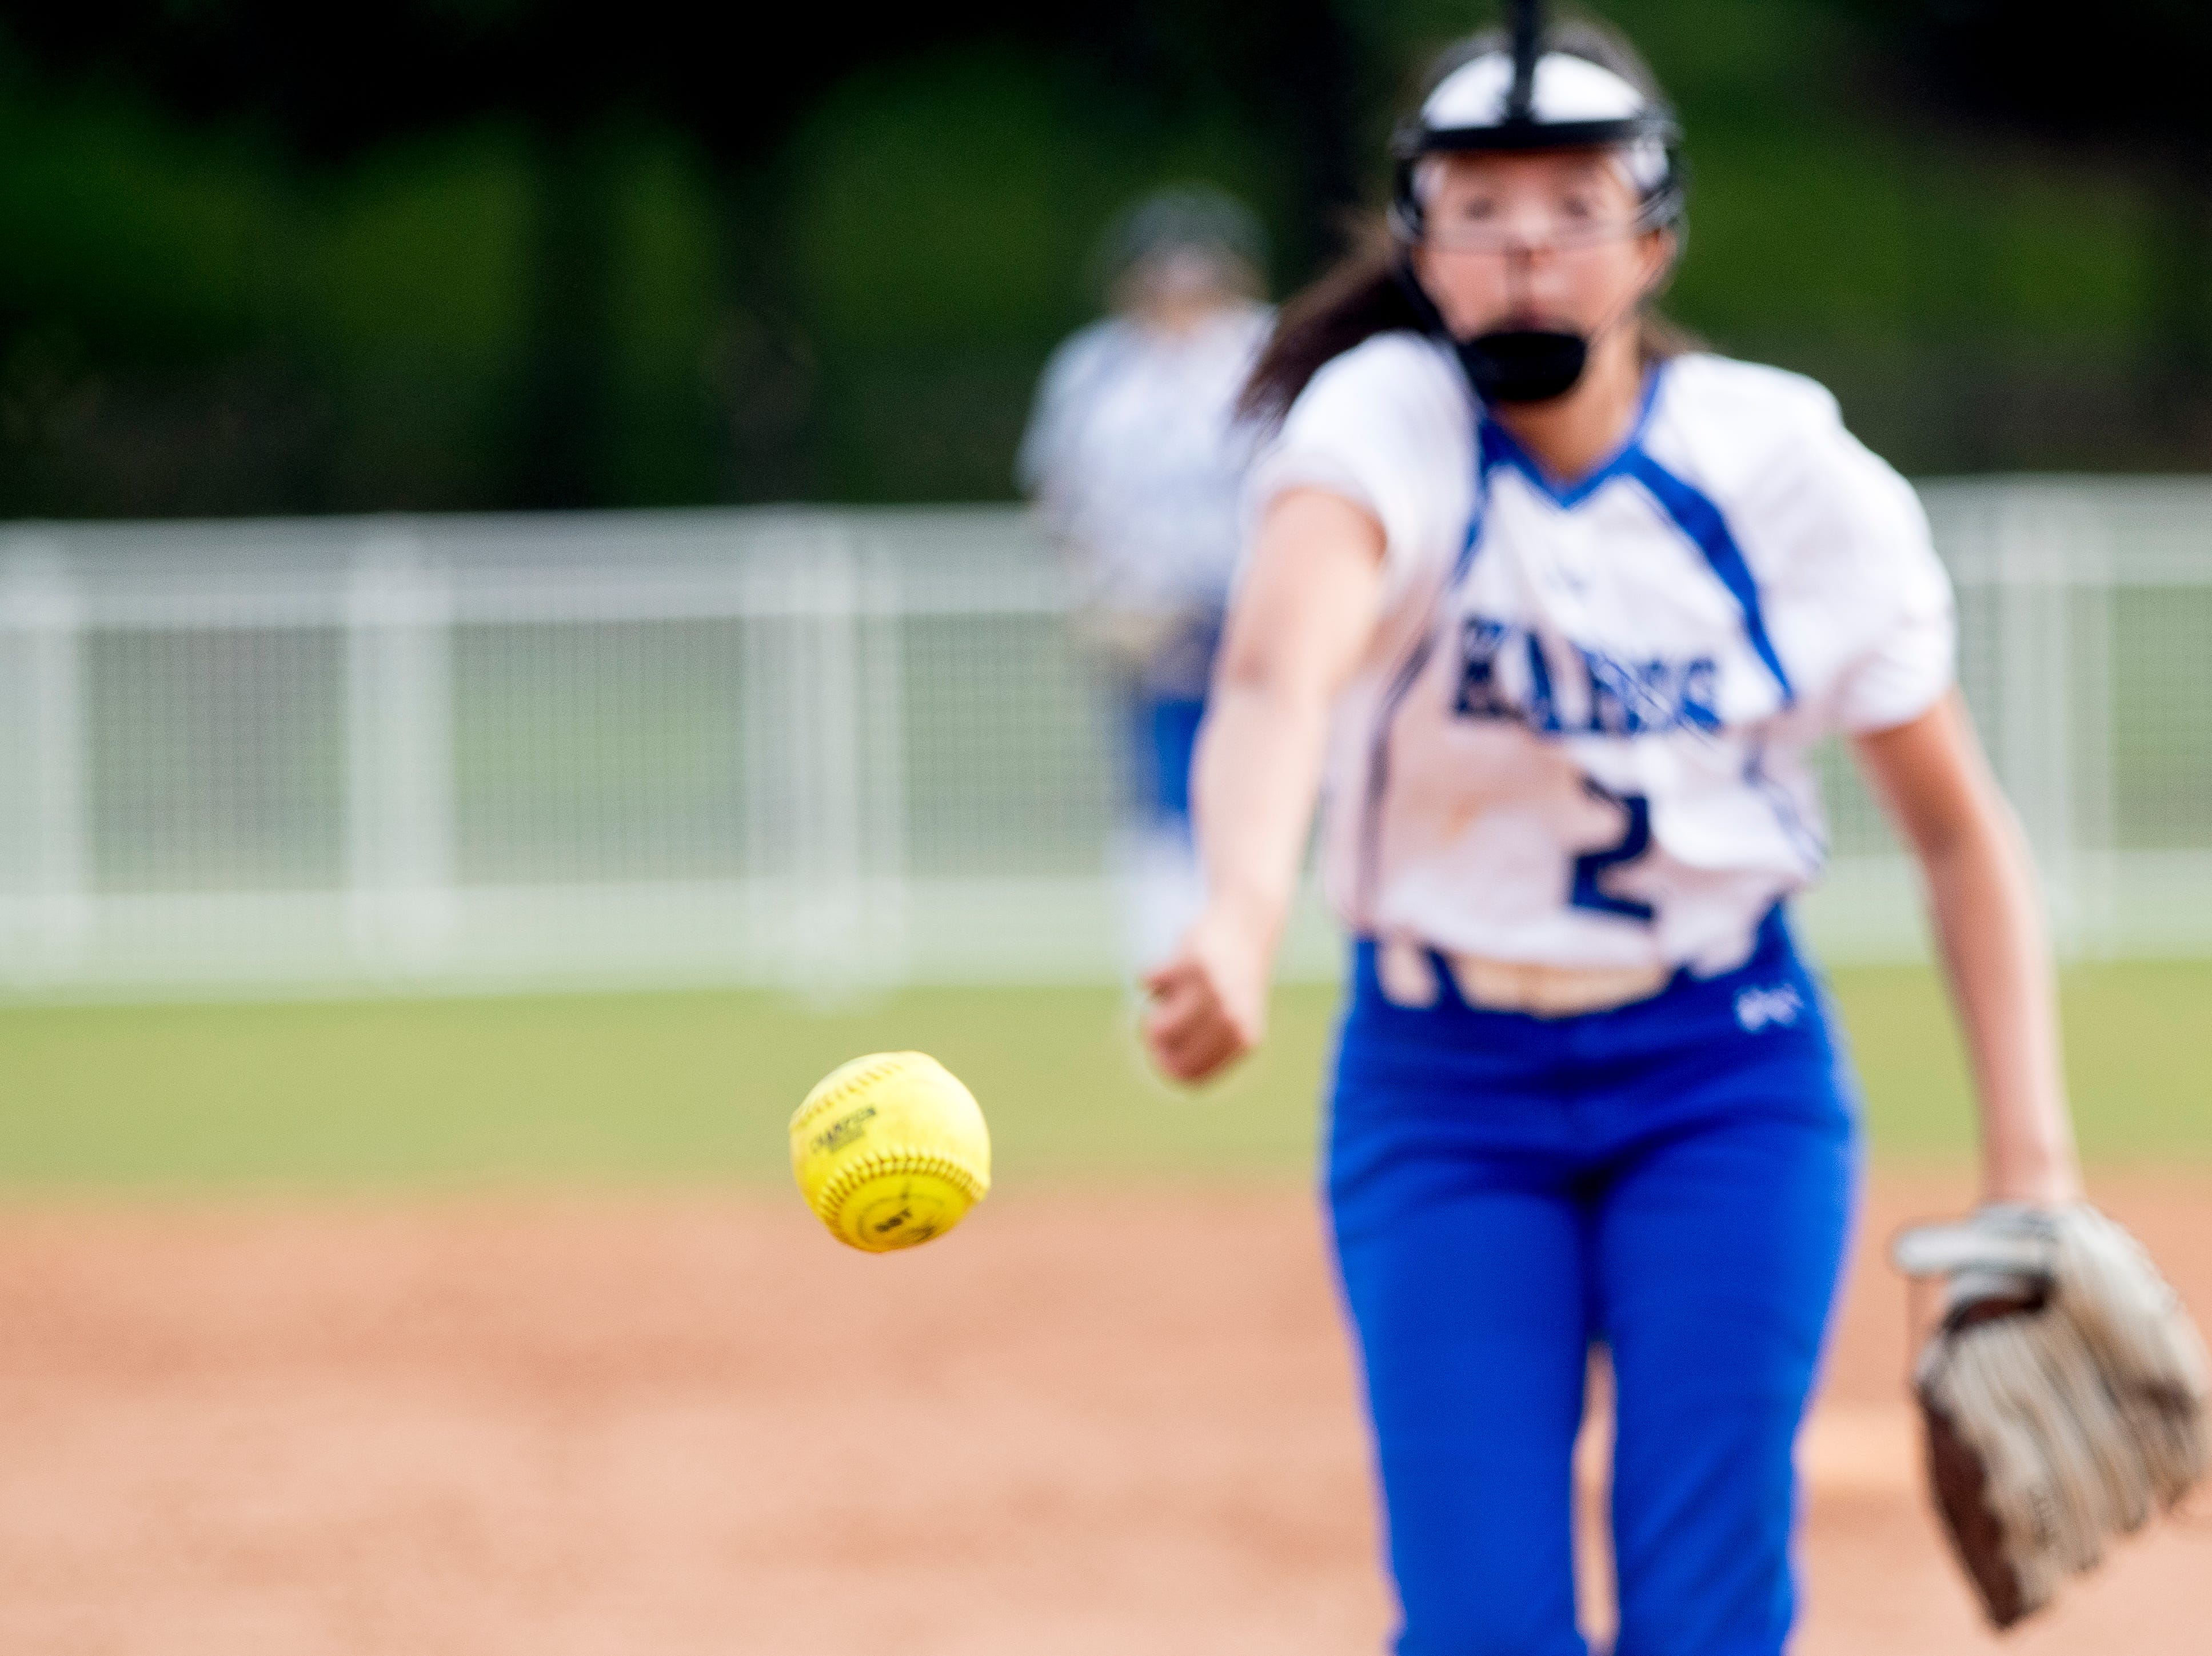 Karns' Kamilla Vincente (2) pitches during a softball game between Catholic and Karns at Caswell Park in Knoxville, Tennessee on Friday, April 12, 2019.